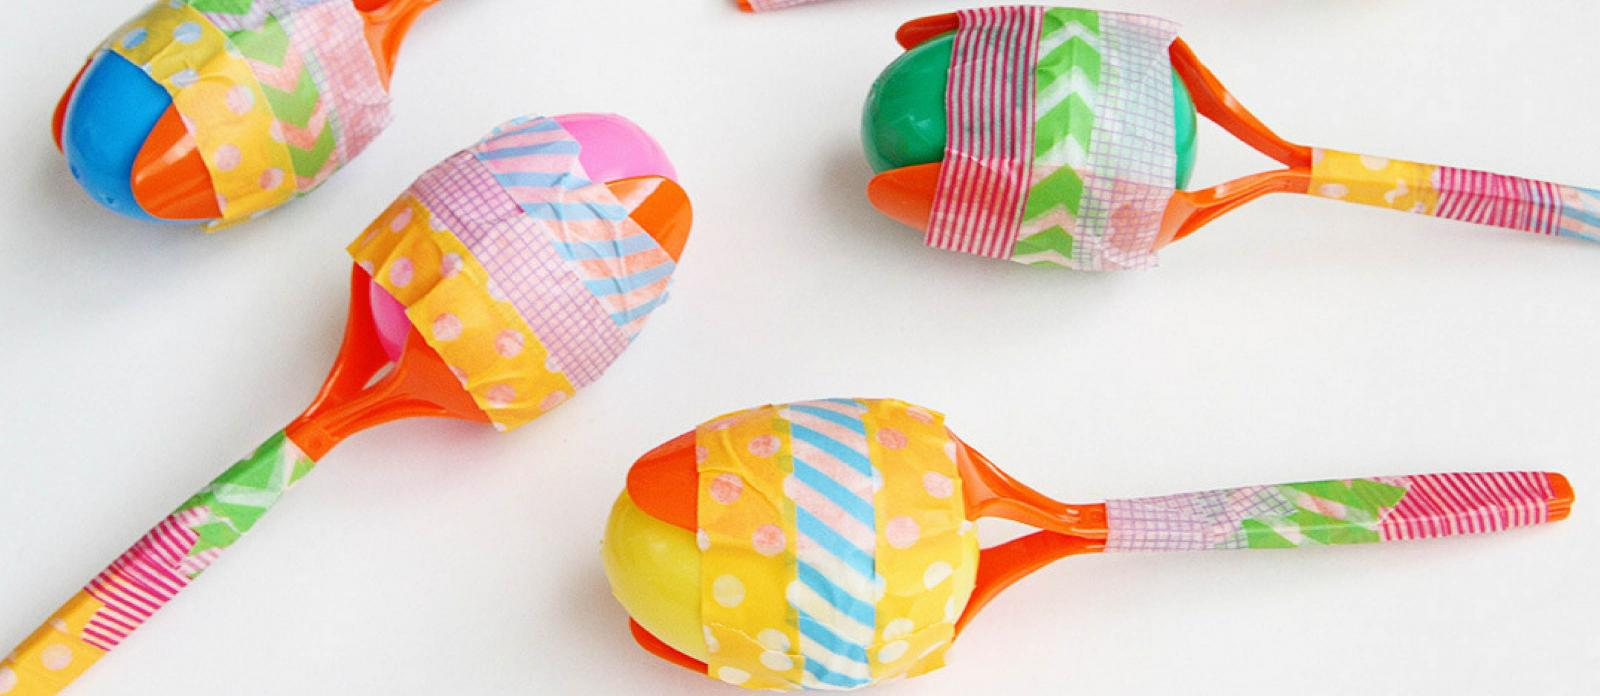 maracas made with plastic spoons and tape